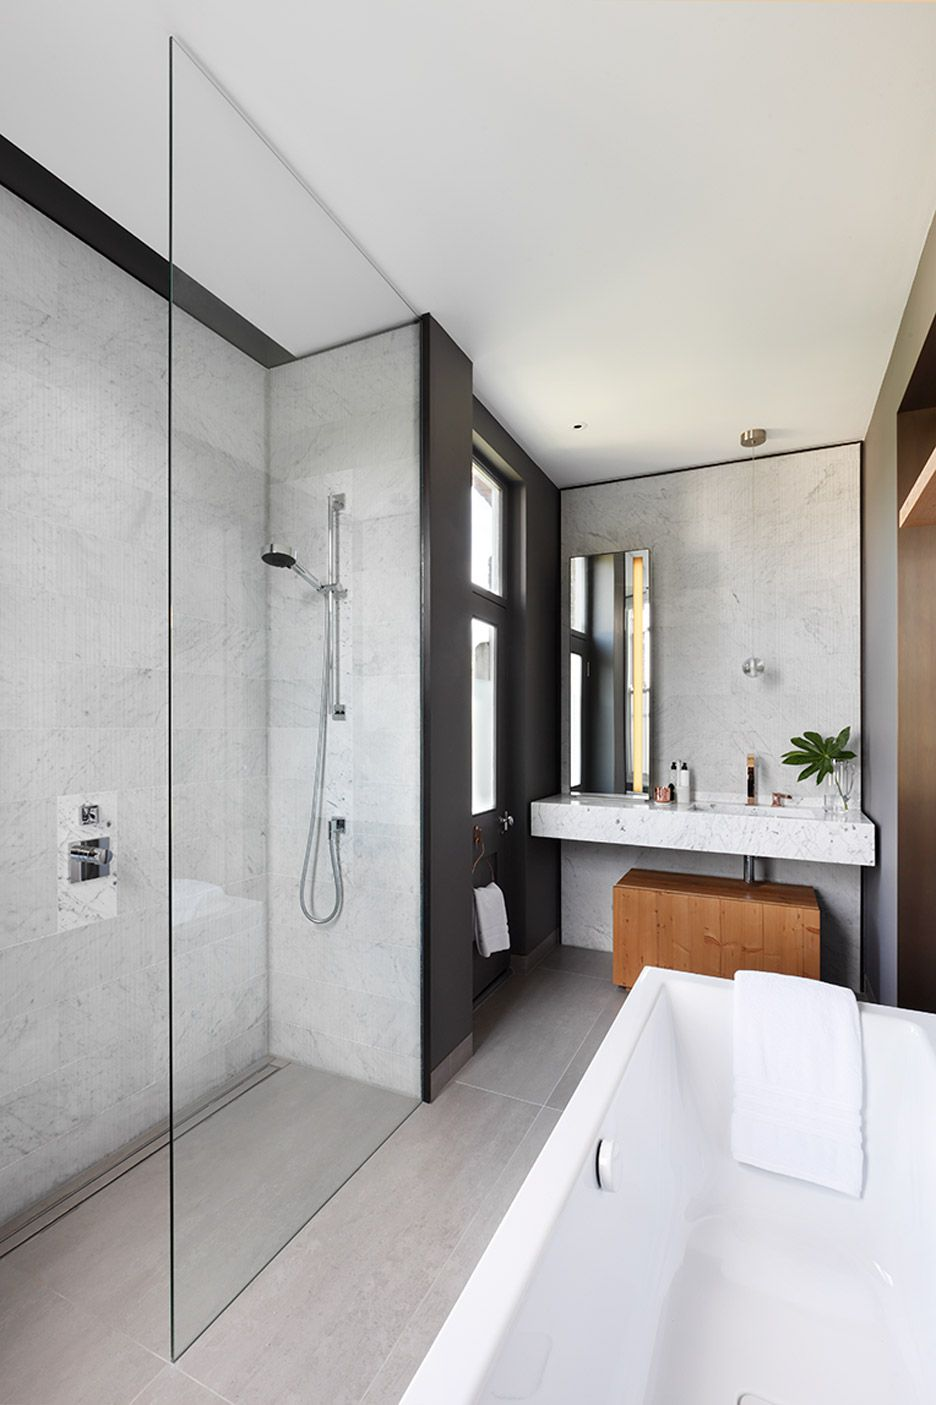 Simple house interior bathroom bathroom  large tile formats simple modern lines maida vale